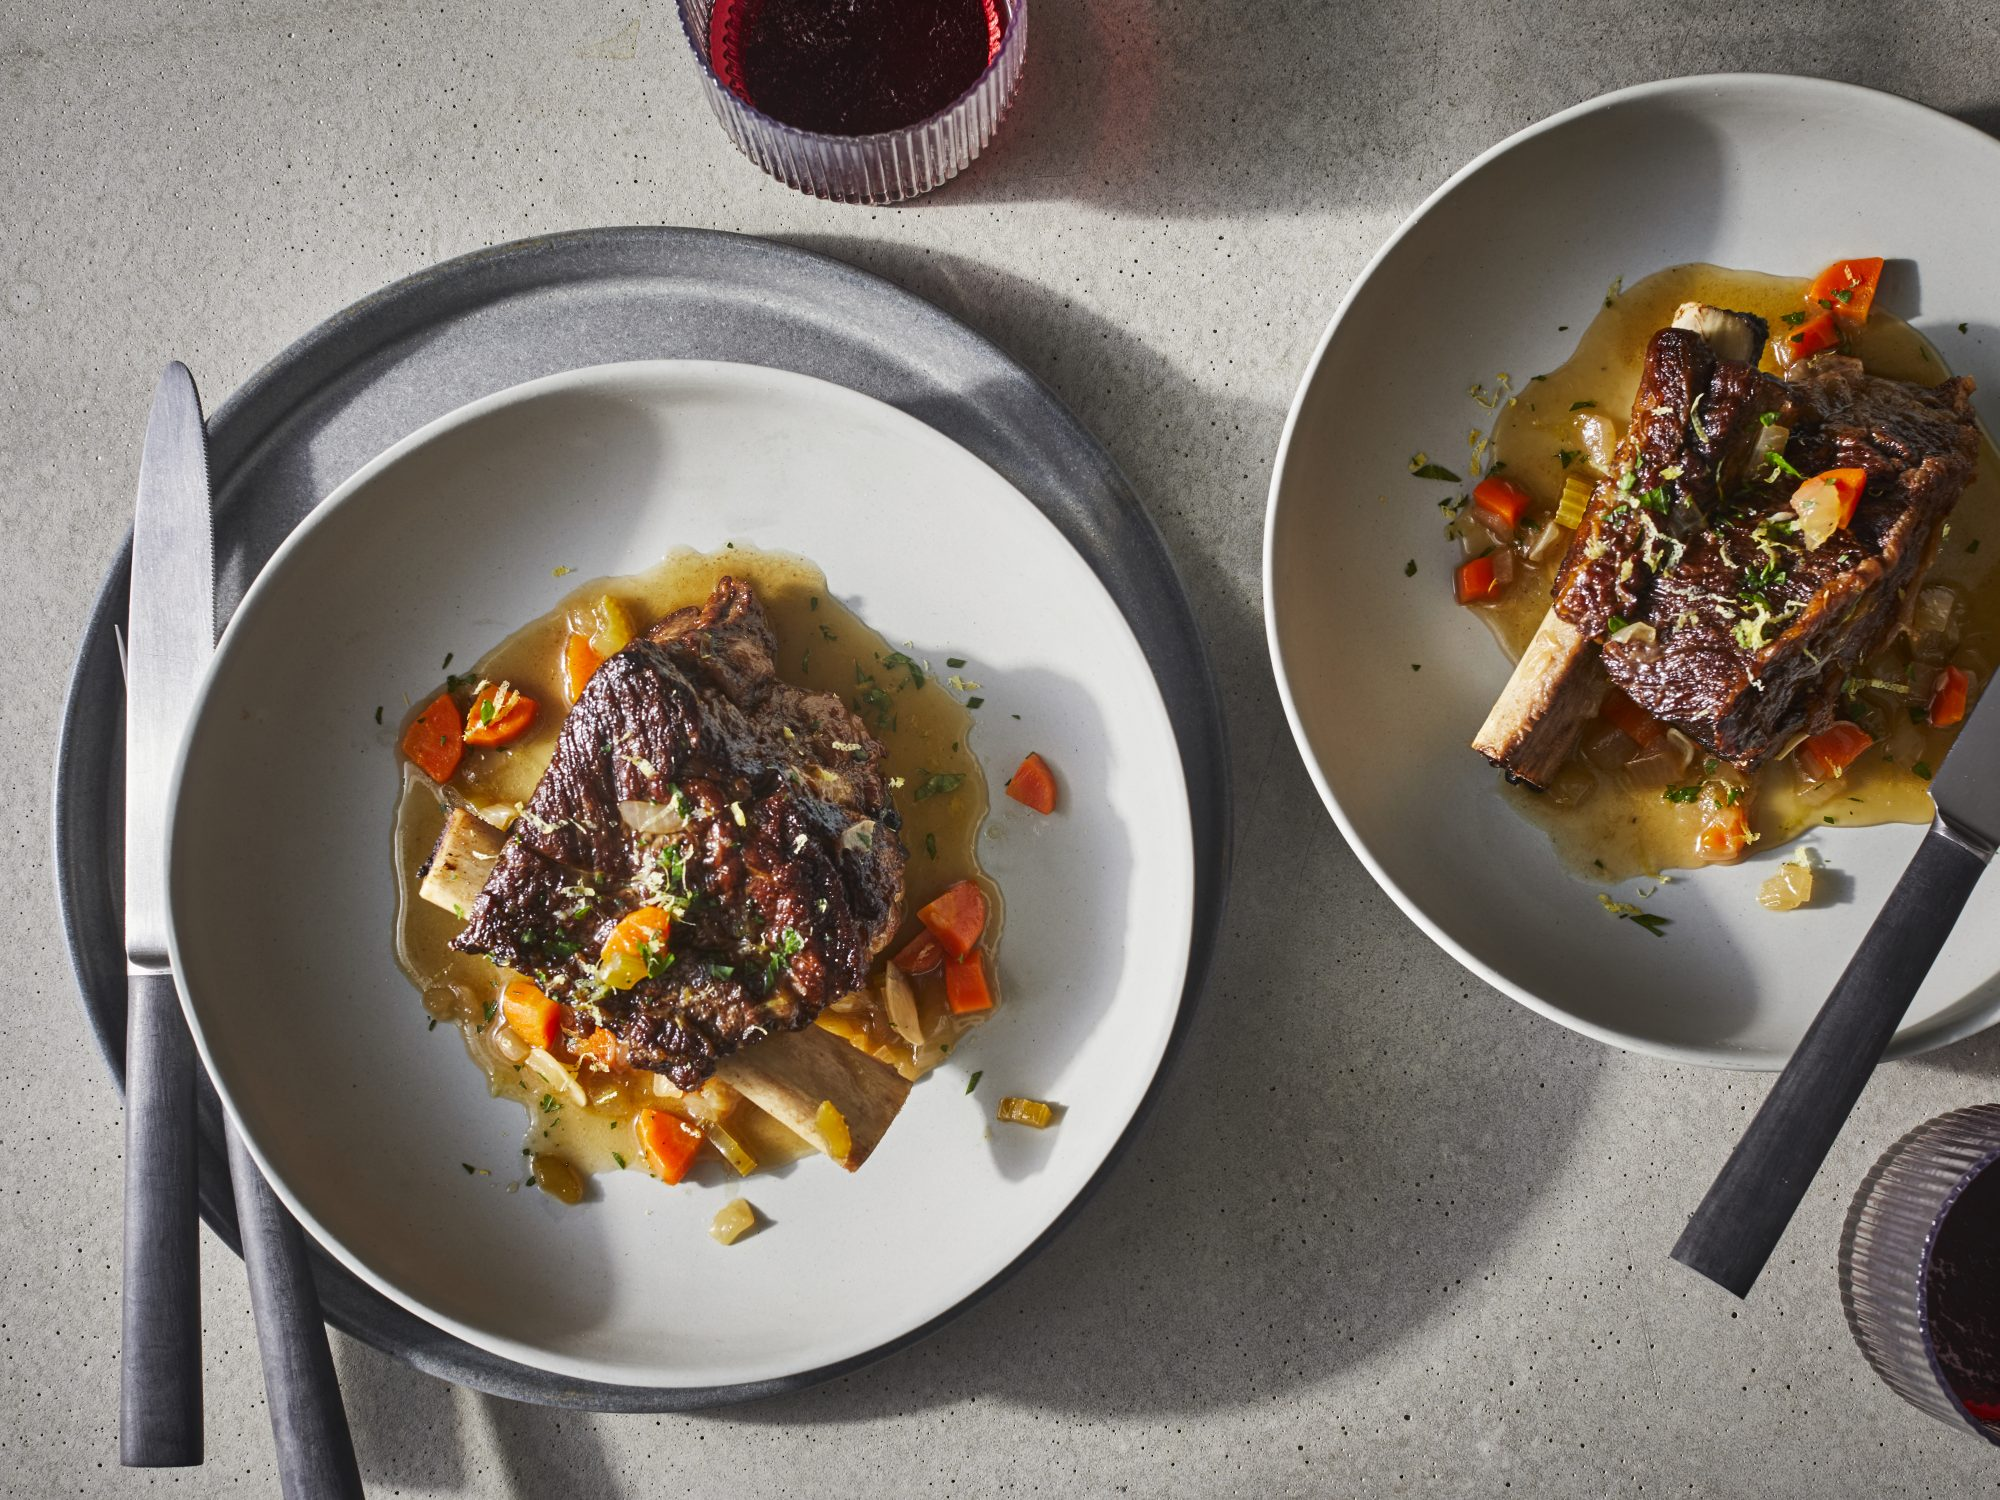 Hard-Cider-Braised-Short-Ribs-FT-Recipe2019297.jpg